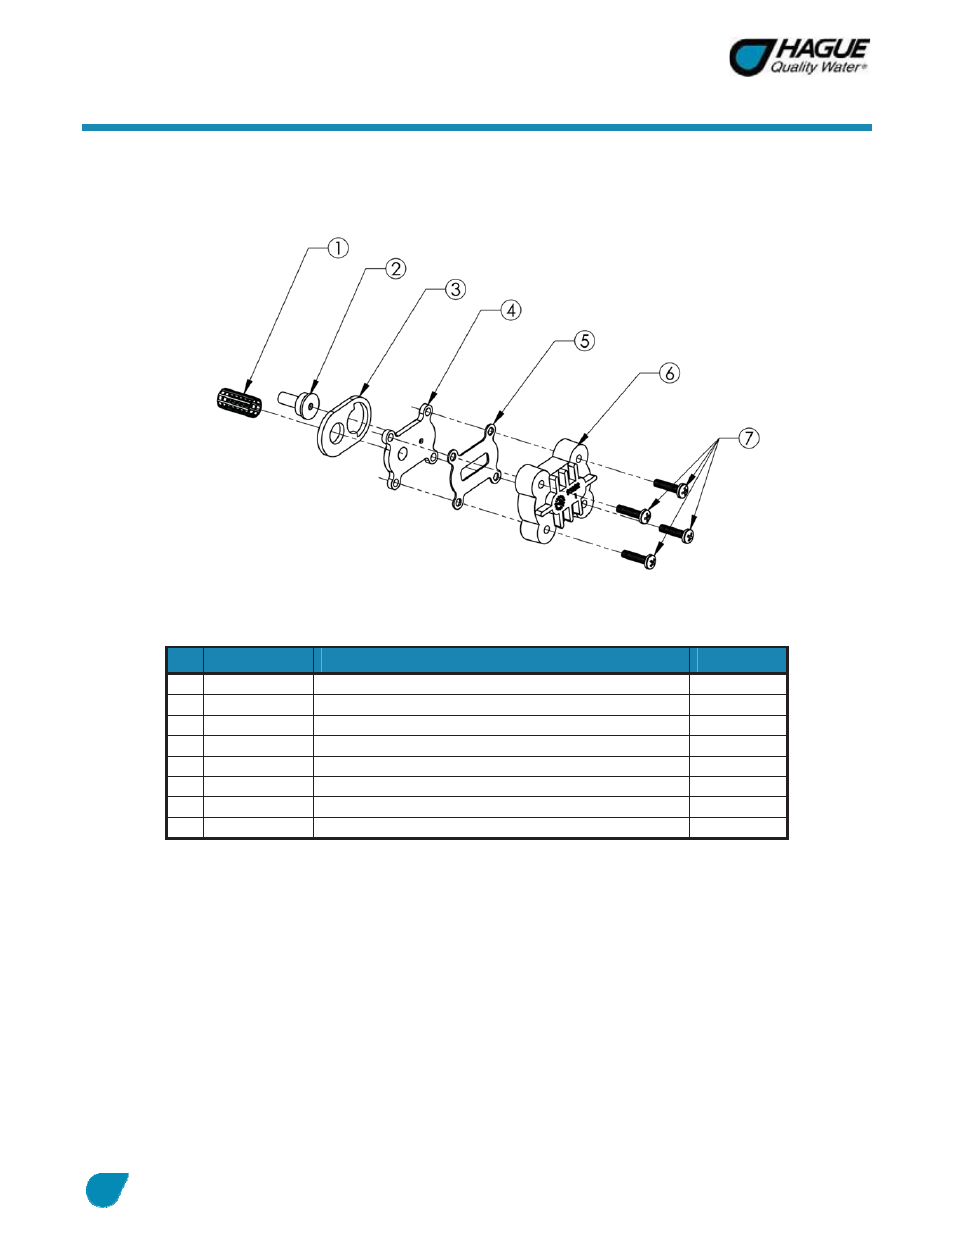 Assembly And Parts Cont Injector Assembly Manual Guide